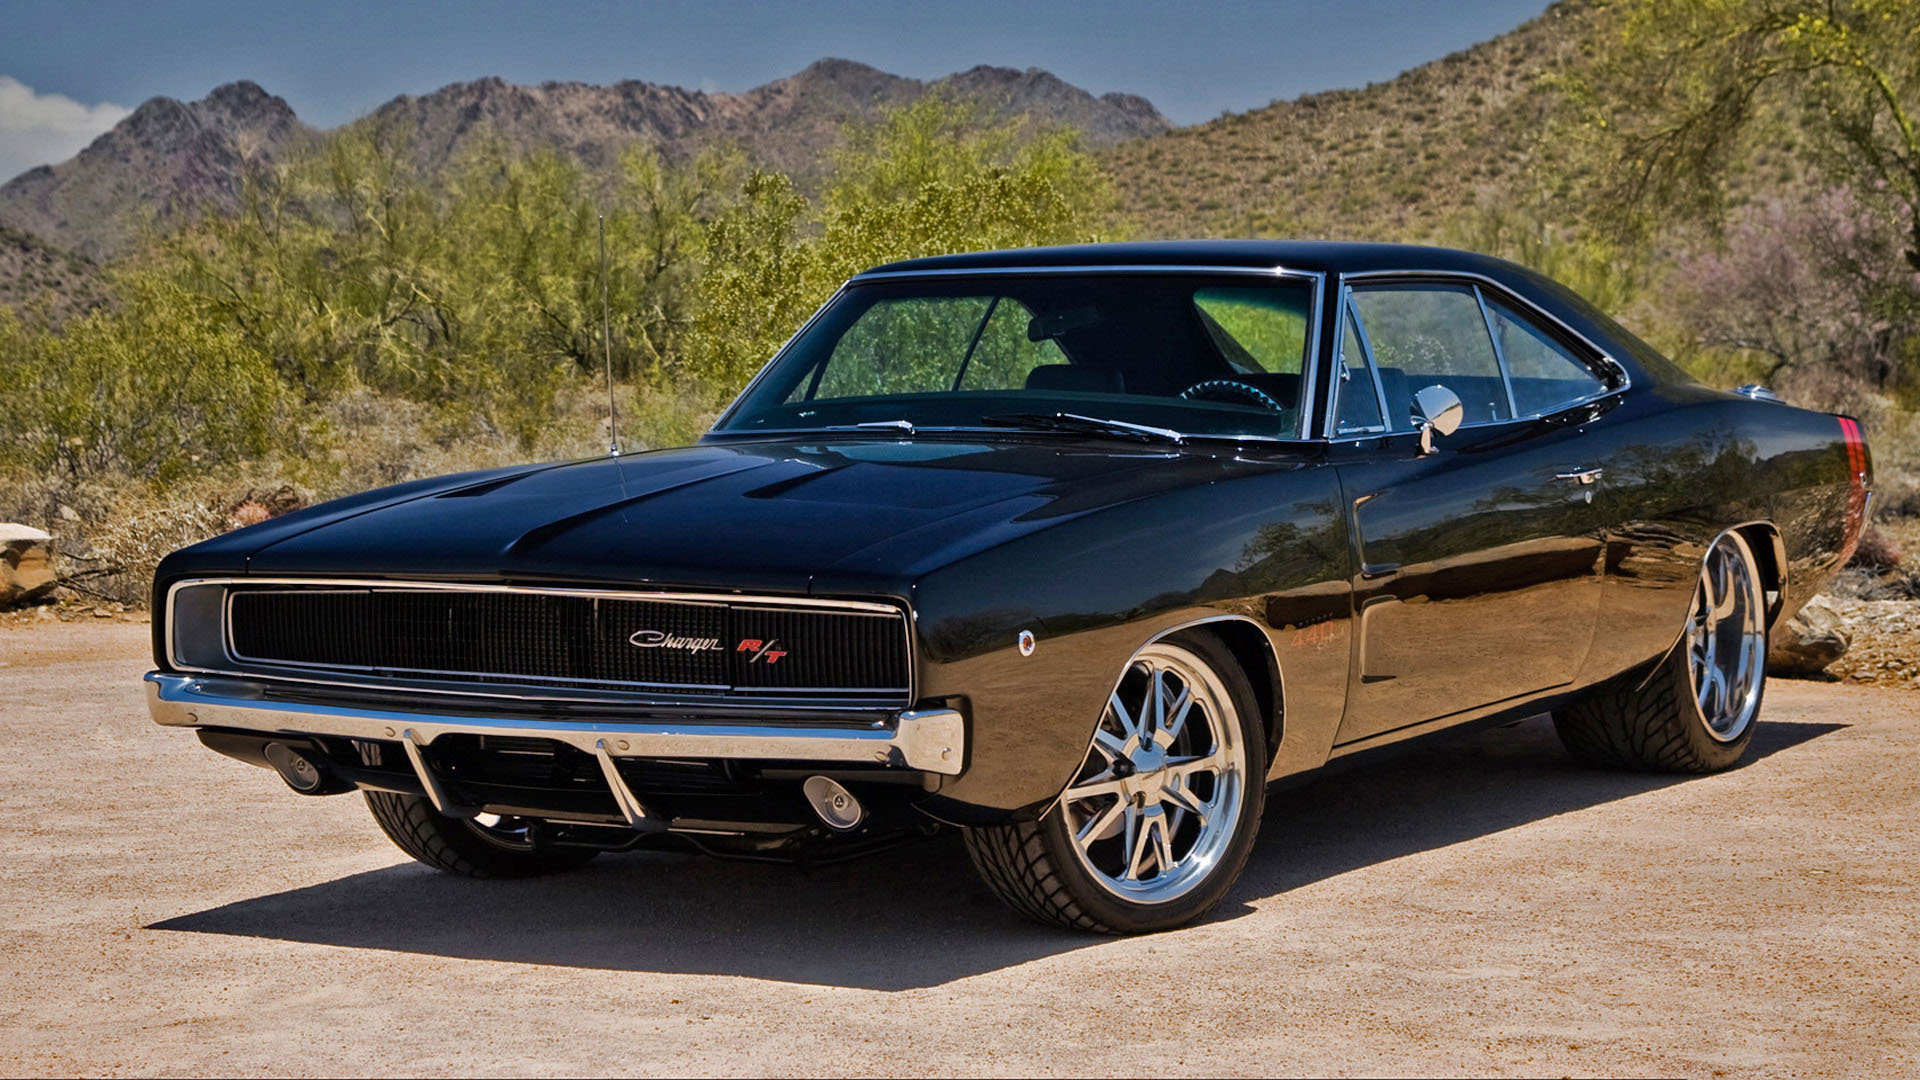 1968 - Dodge Charger RT by 4WheelsSociety on DeviantArt